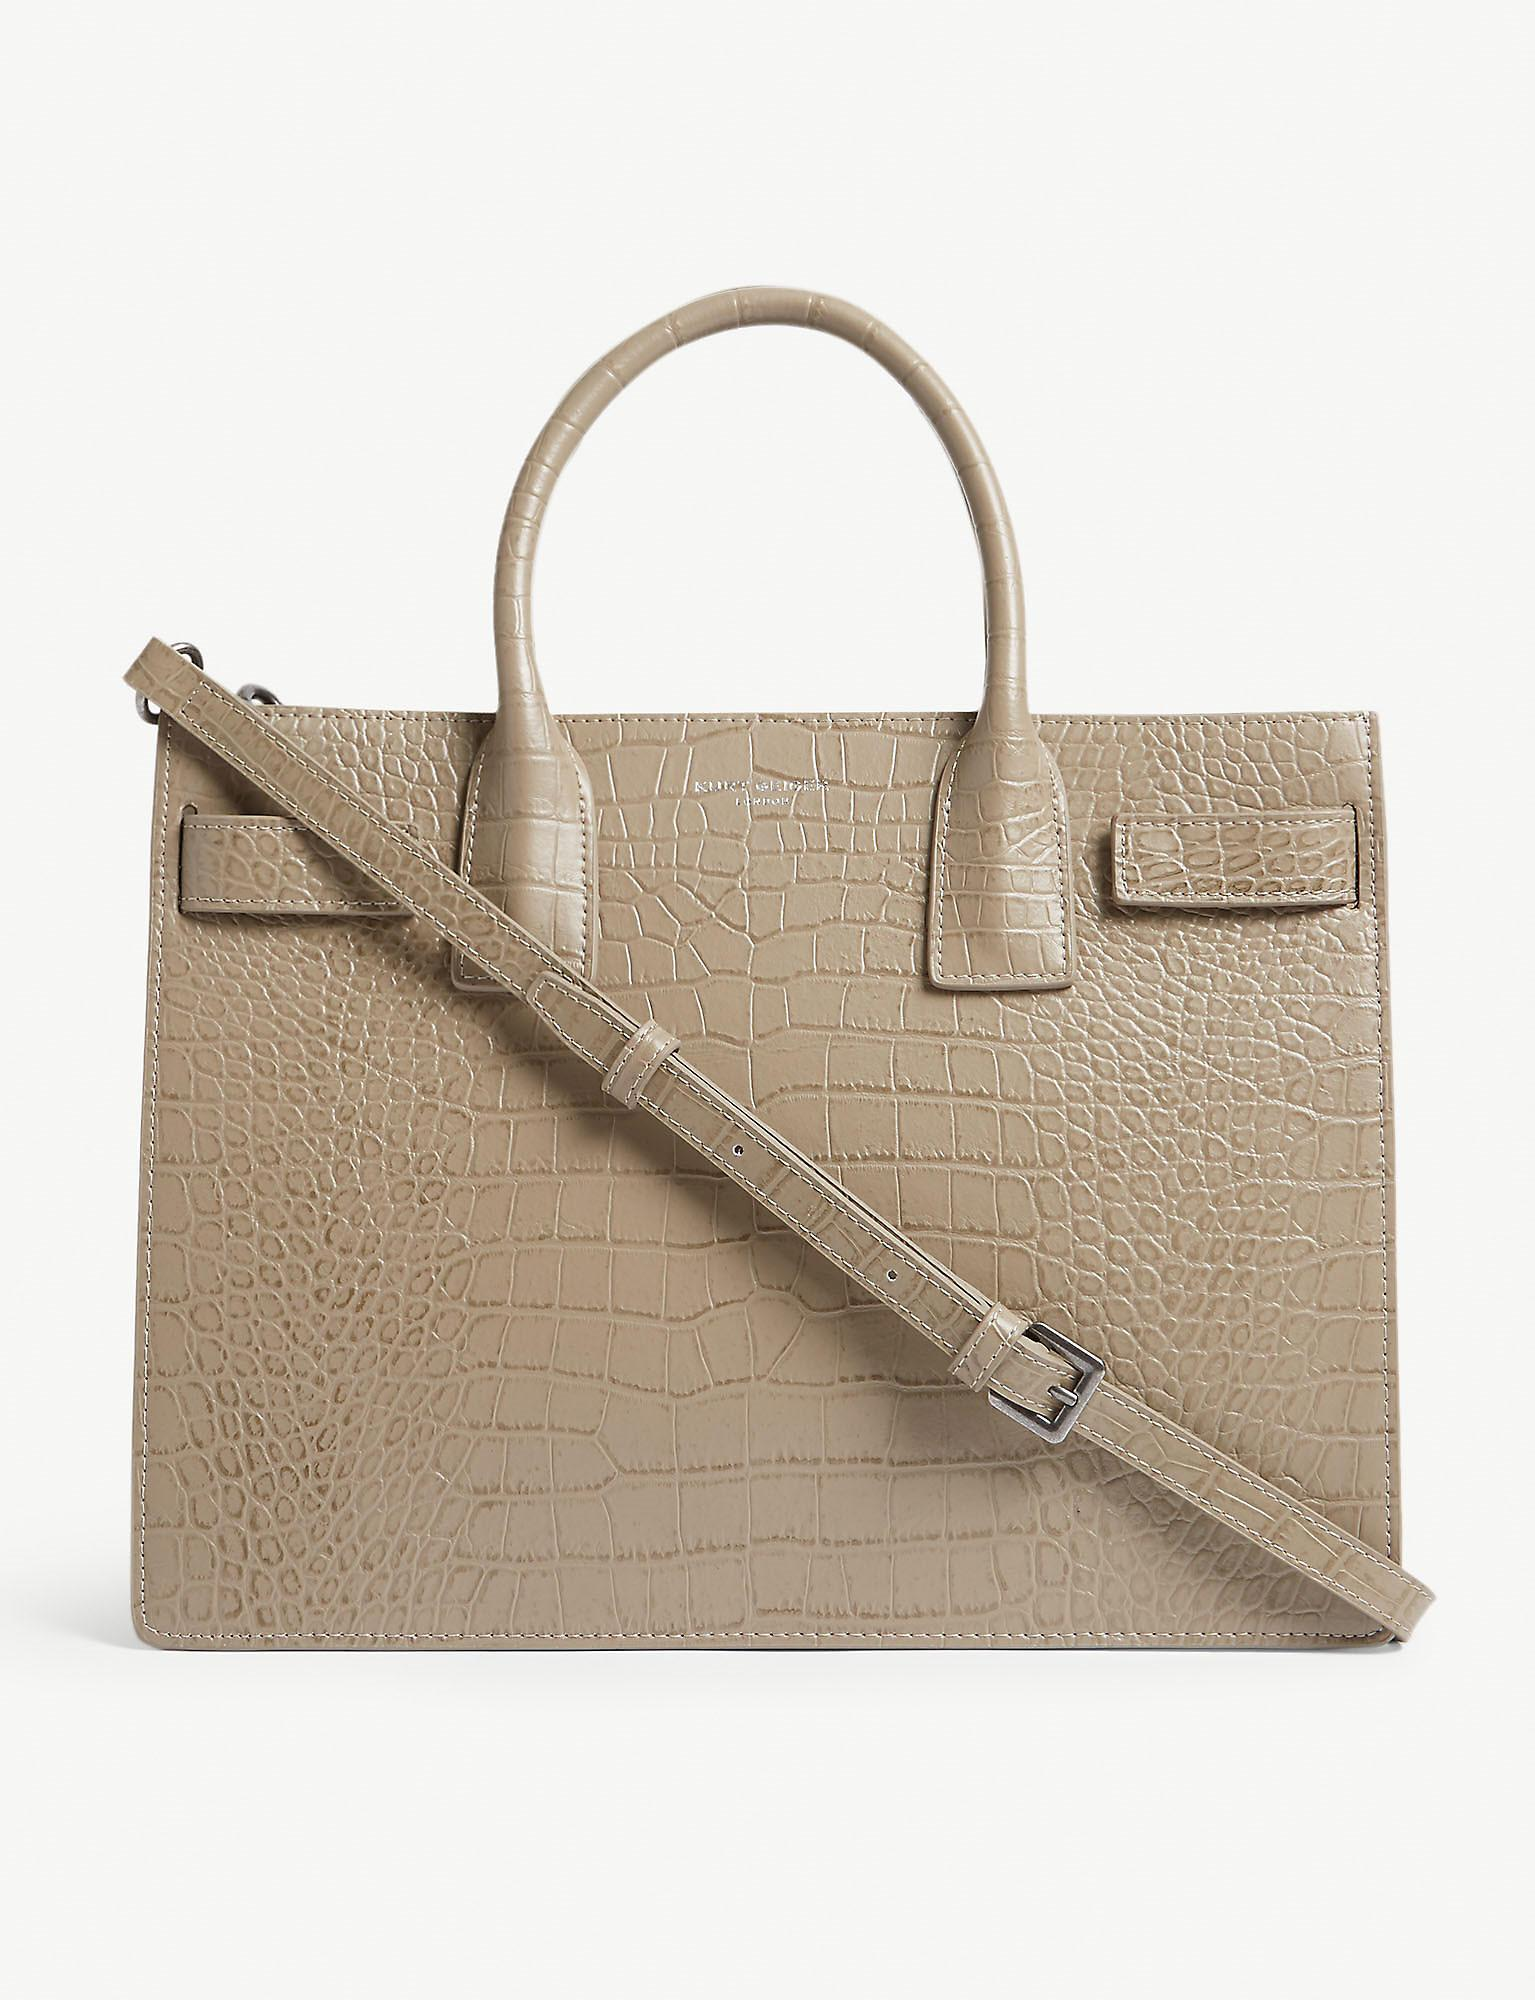 e0053efe9f5 Kurt Geiger Shoreditch Croc-embossed Leather Tote Bag in Natural - Lyst